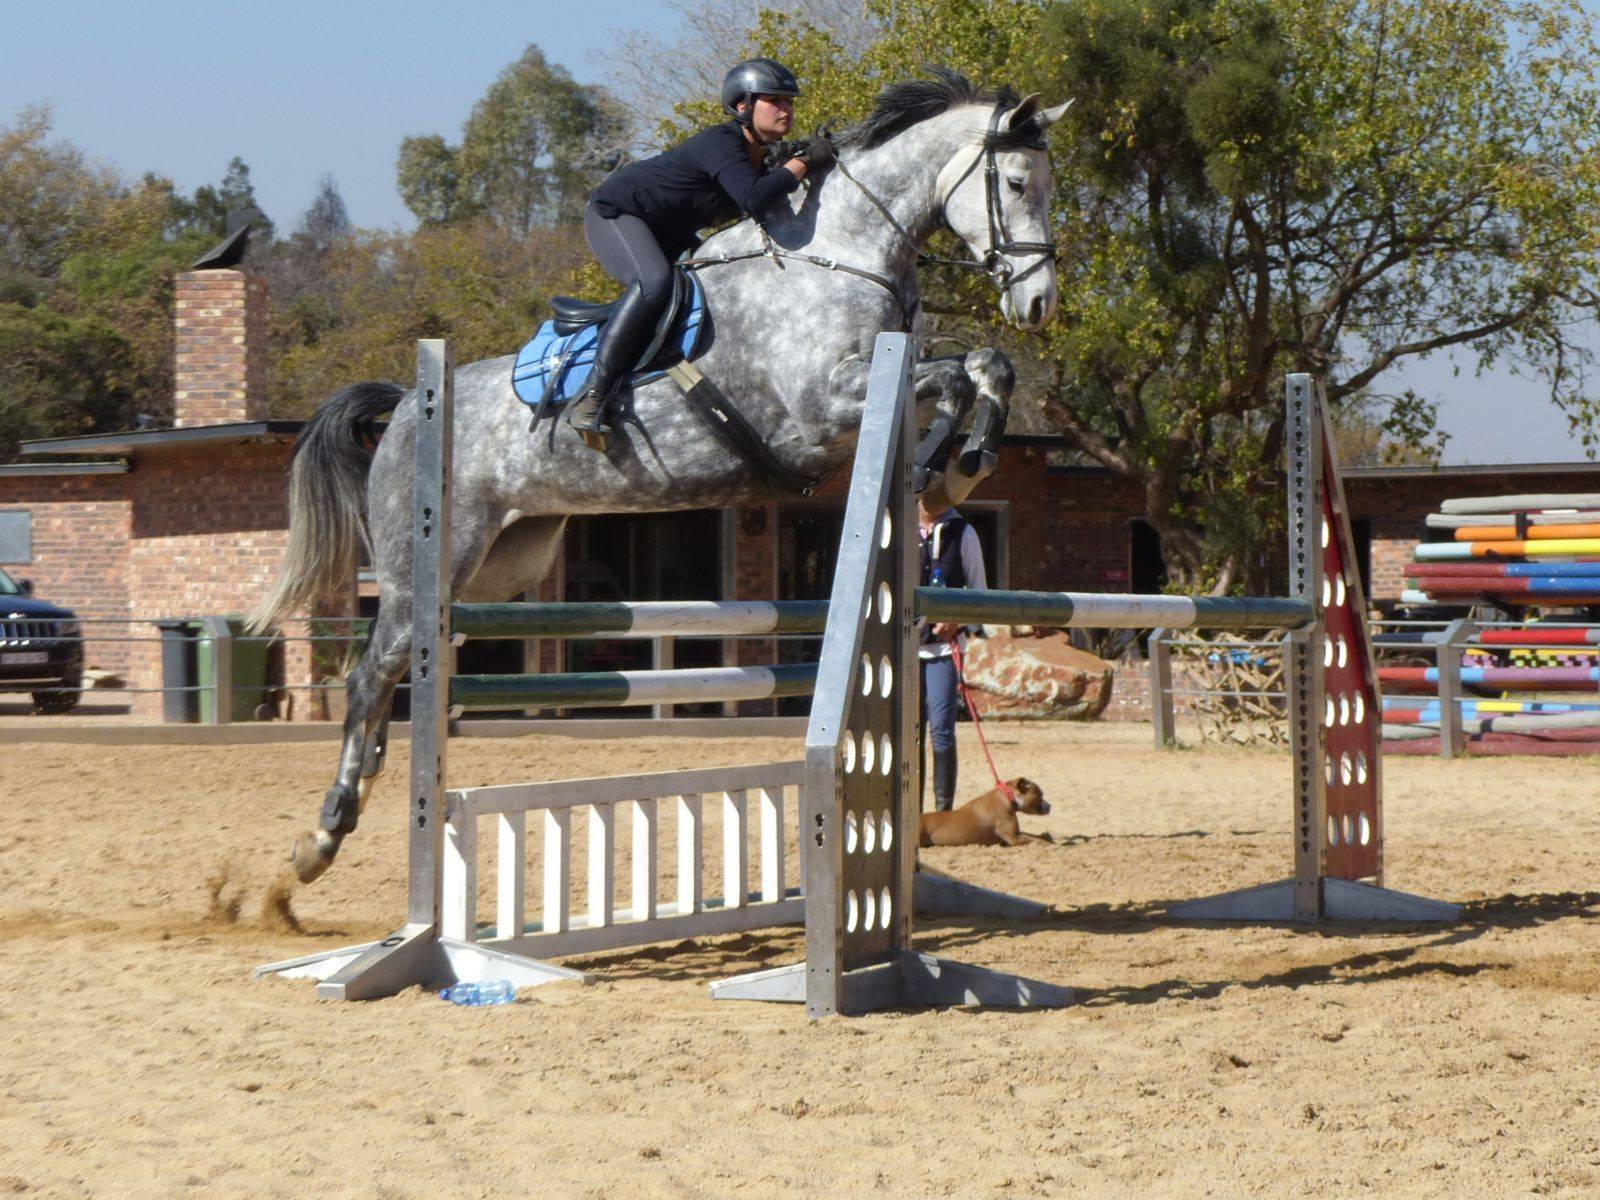 Horse Jumping in South Africa